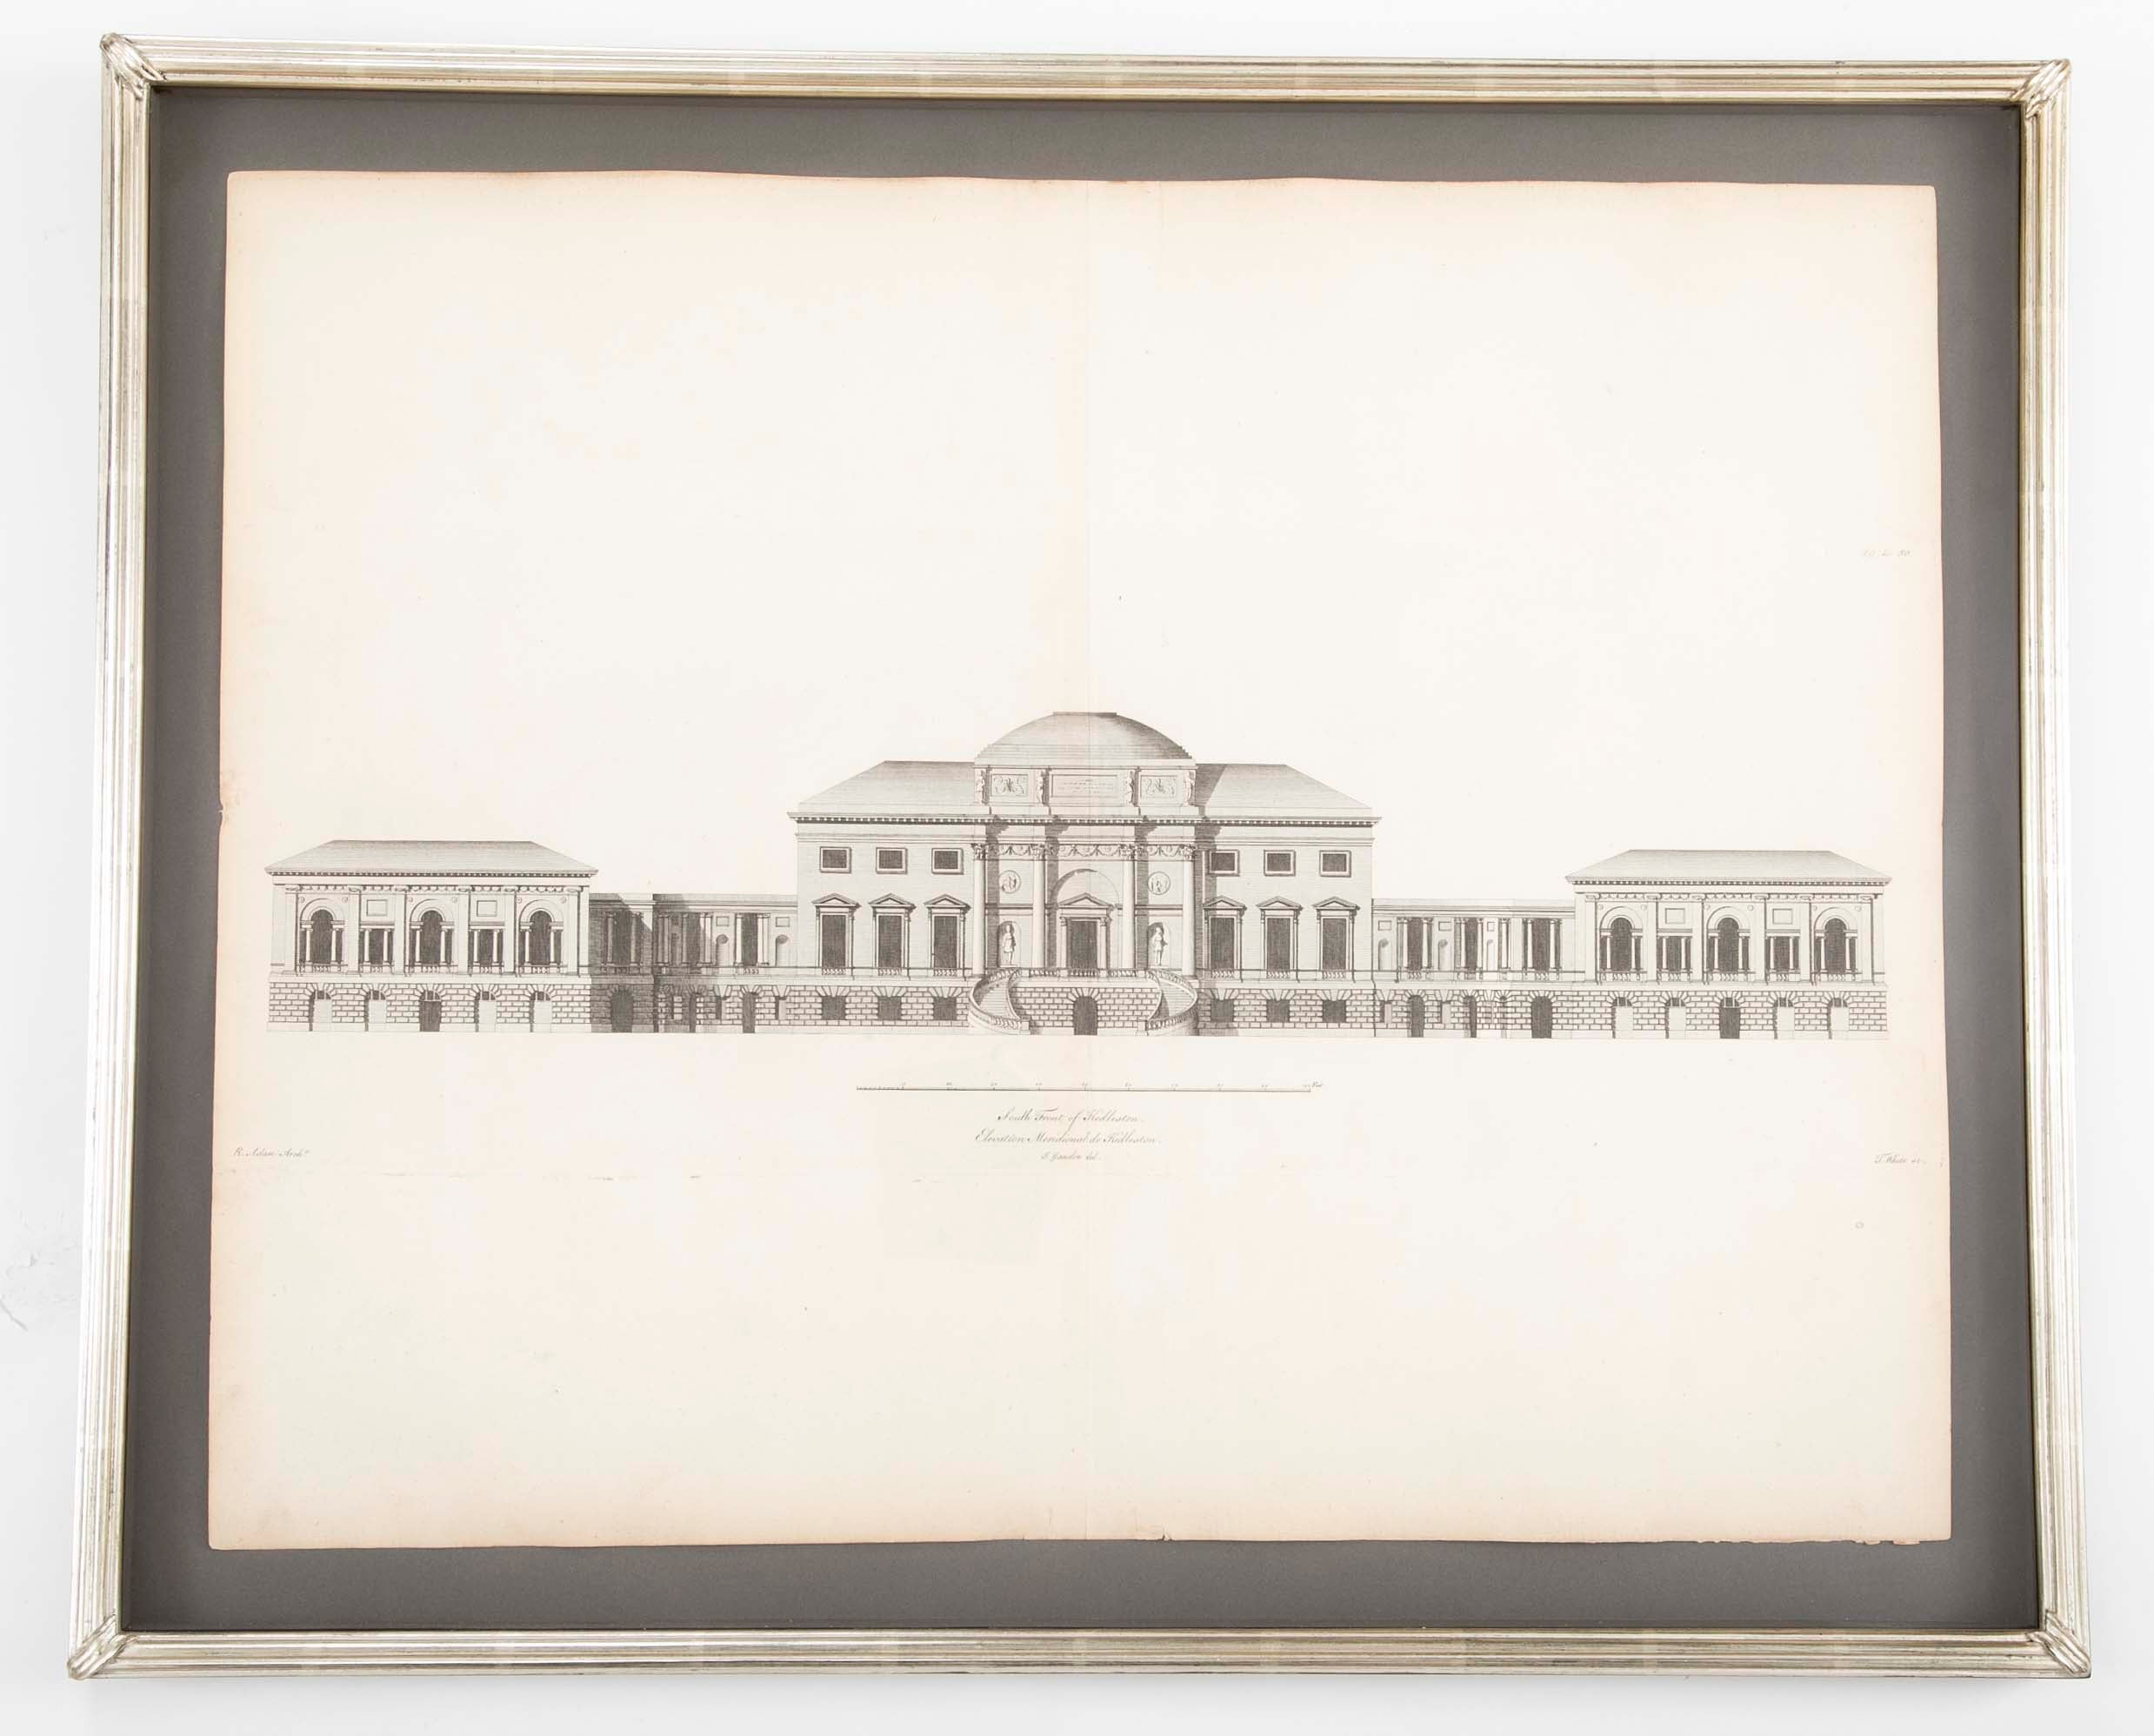 English Architectural Engravings